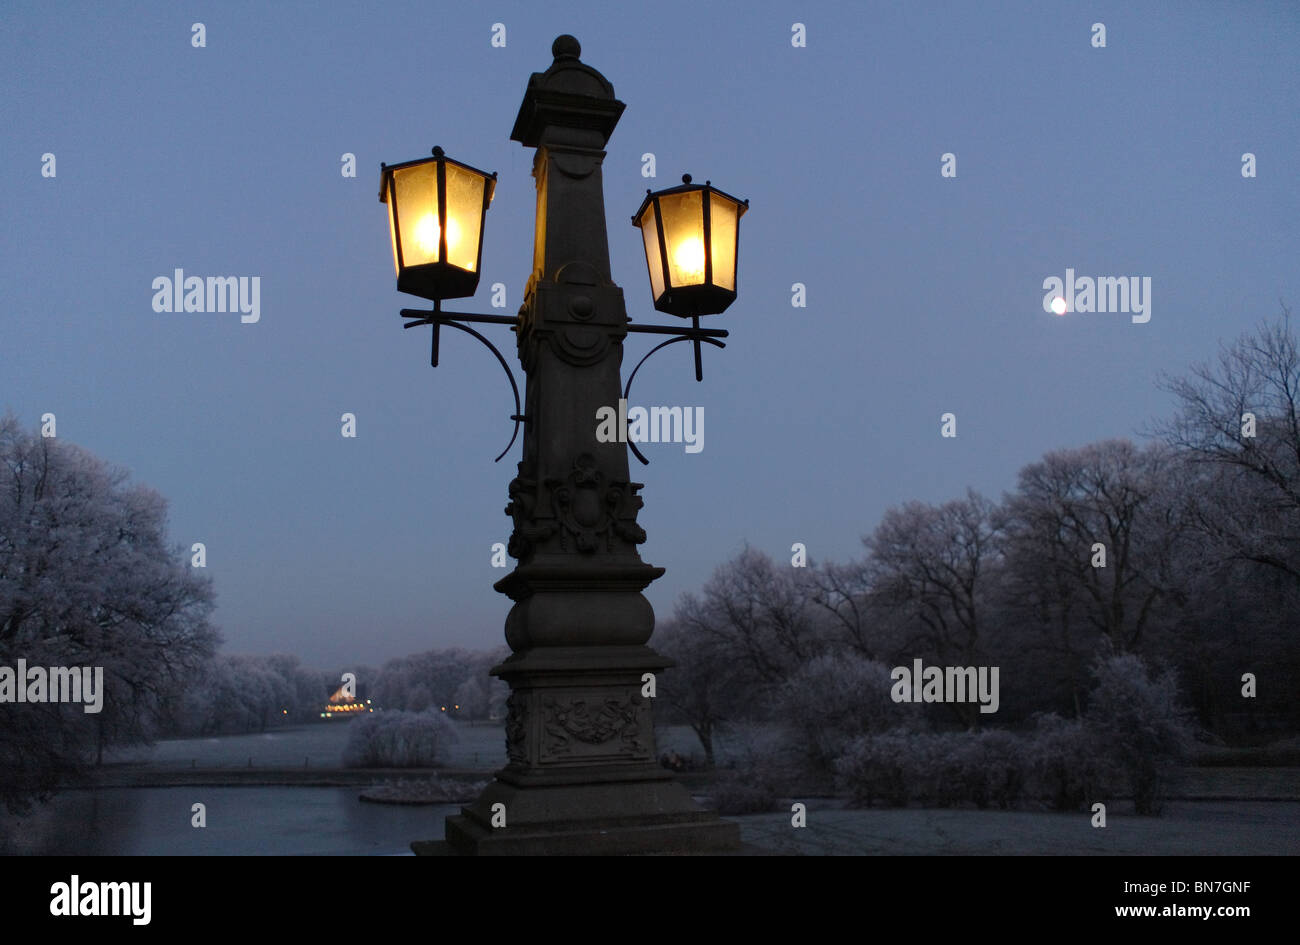 Lampen Bremen Street Lamp In Buergerpark Bremen Germany Stock Photo 30284955